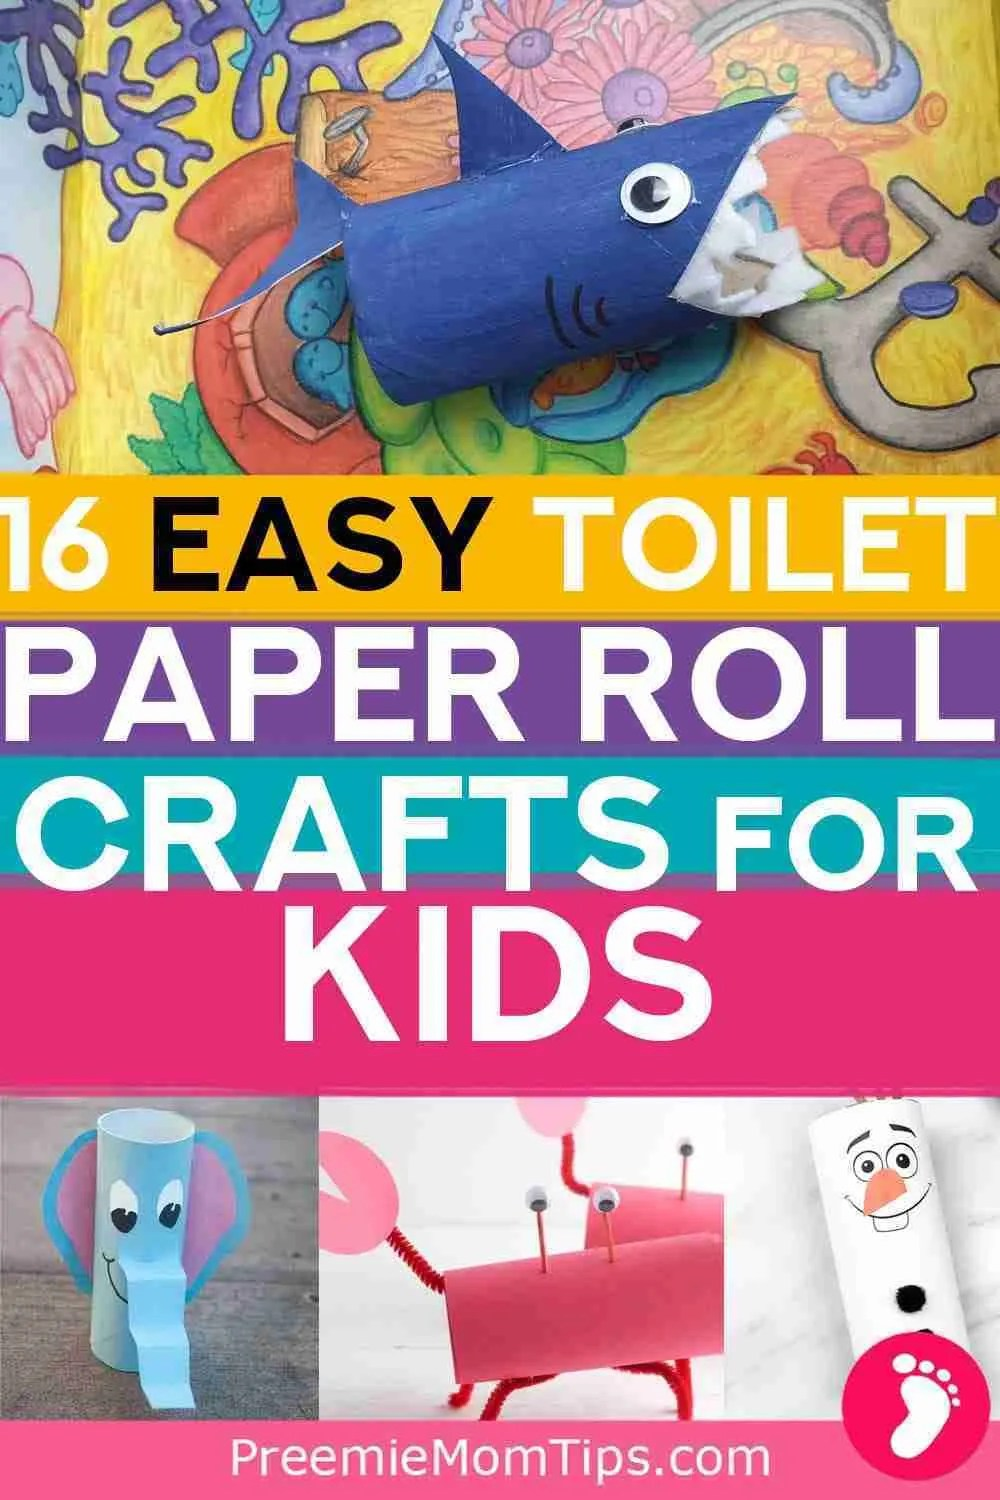 Check out these 16 easy toilet paper roll activites foor kids to try indoors